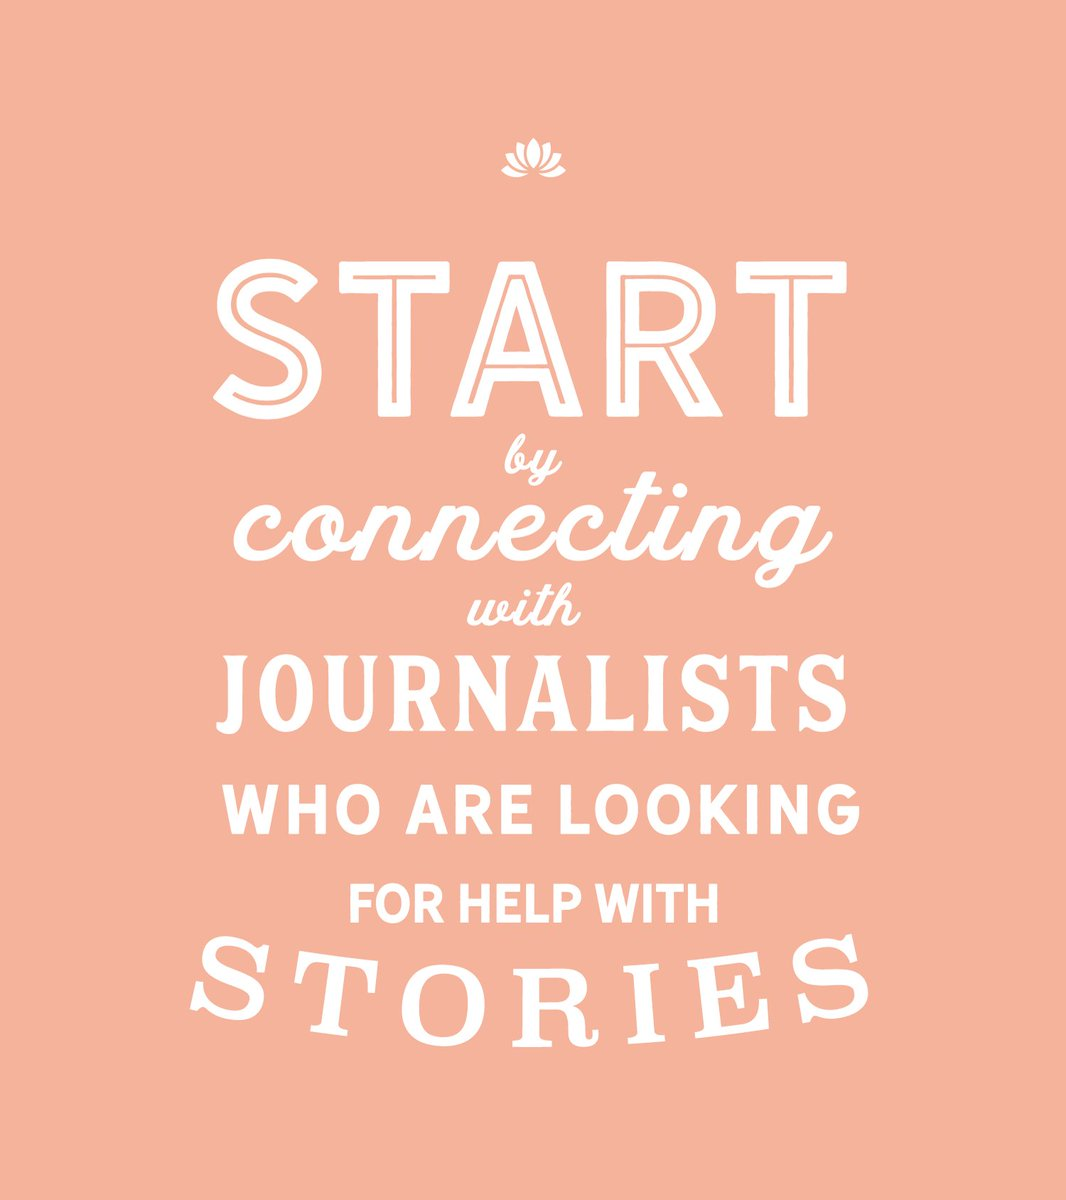 Want your business to be featured in newspapers/magazines? Start here: https://t.co/E4Tjzh0Q9G #soulfulpr #marketing #pr